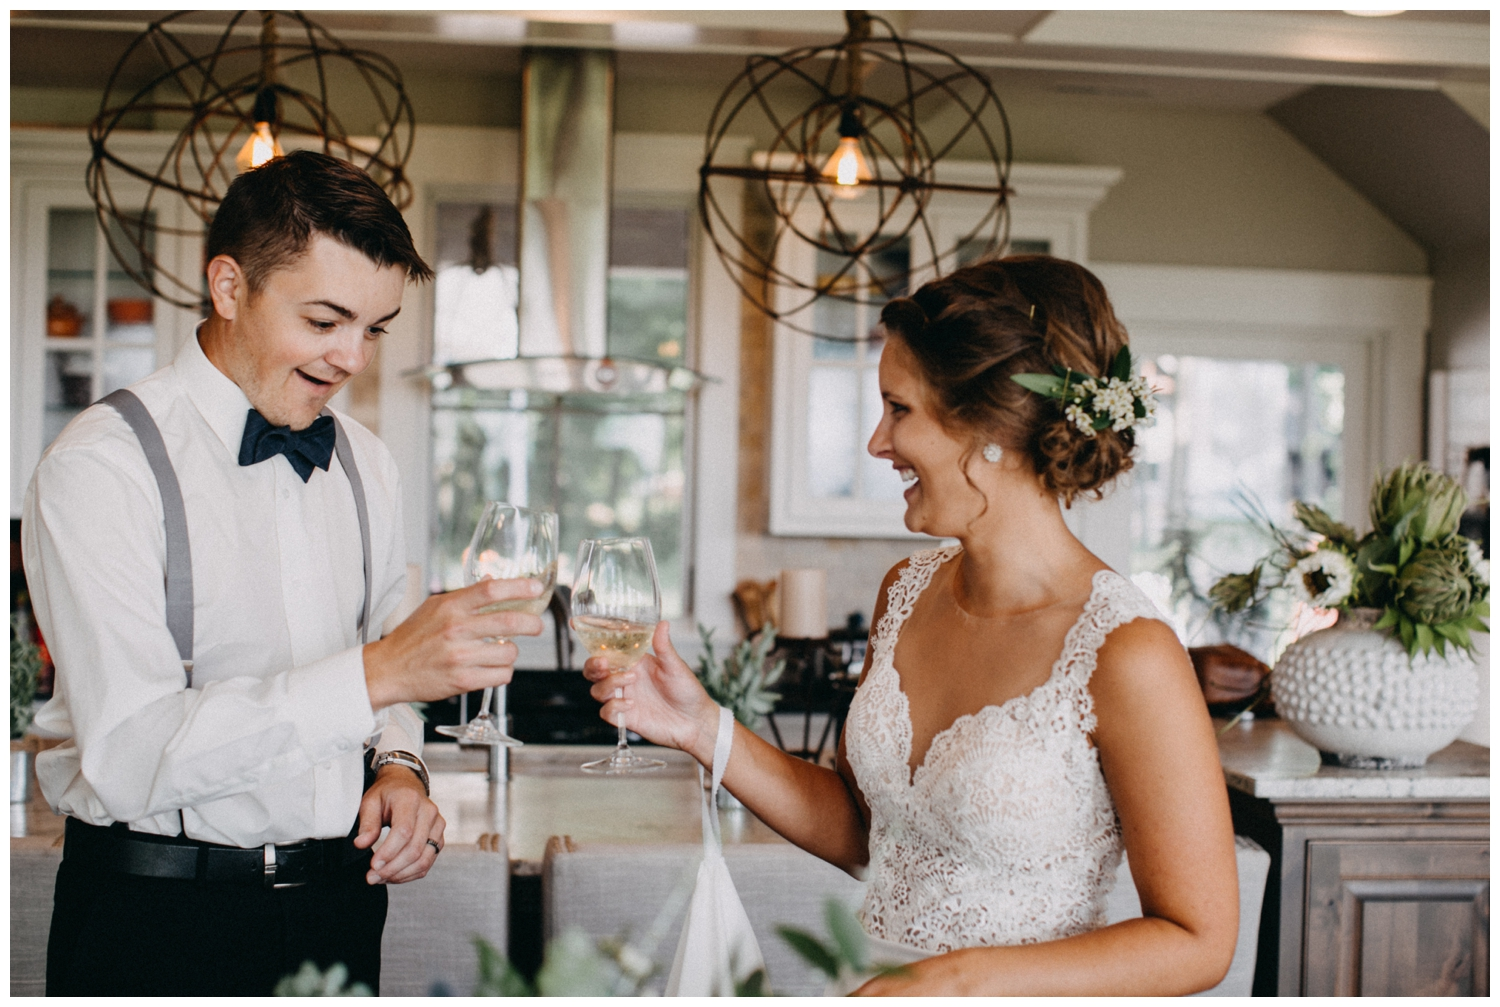 Bride and groom champagne toast at intimate Lake Edward cabin wedding